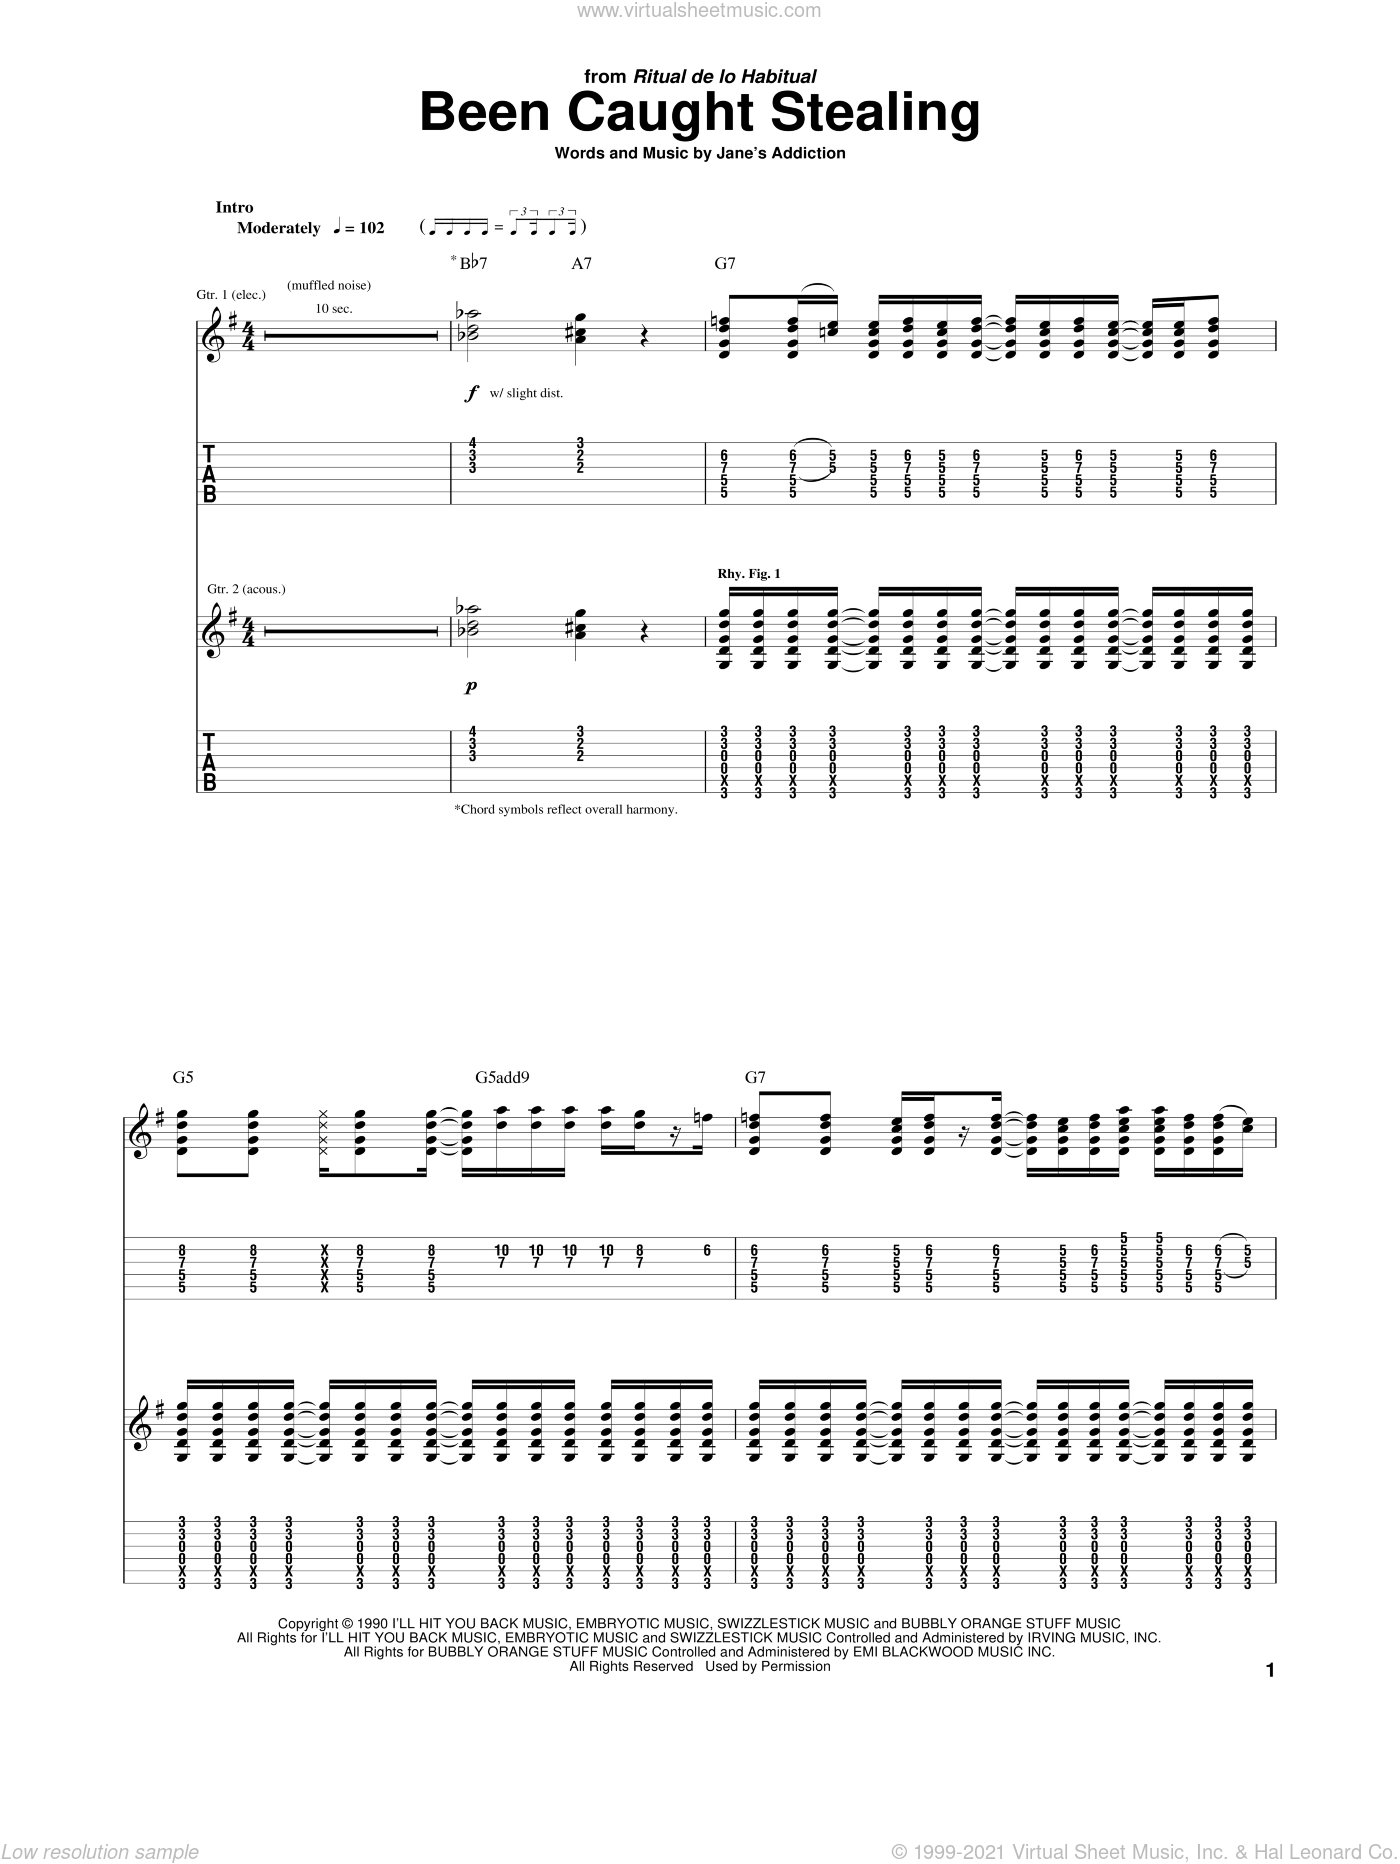 Been Caught Stealing sheet music for guitar (tablature) by Jane's Addiction, Dave Navarro, Perry Farrell and Stephen Perkins, intermediate skill level